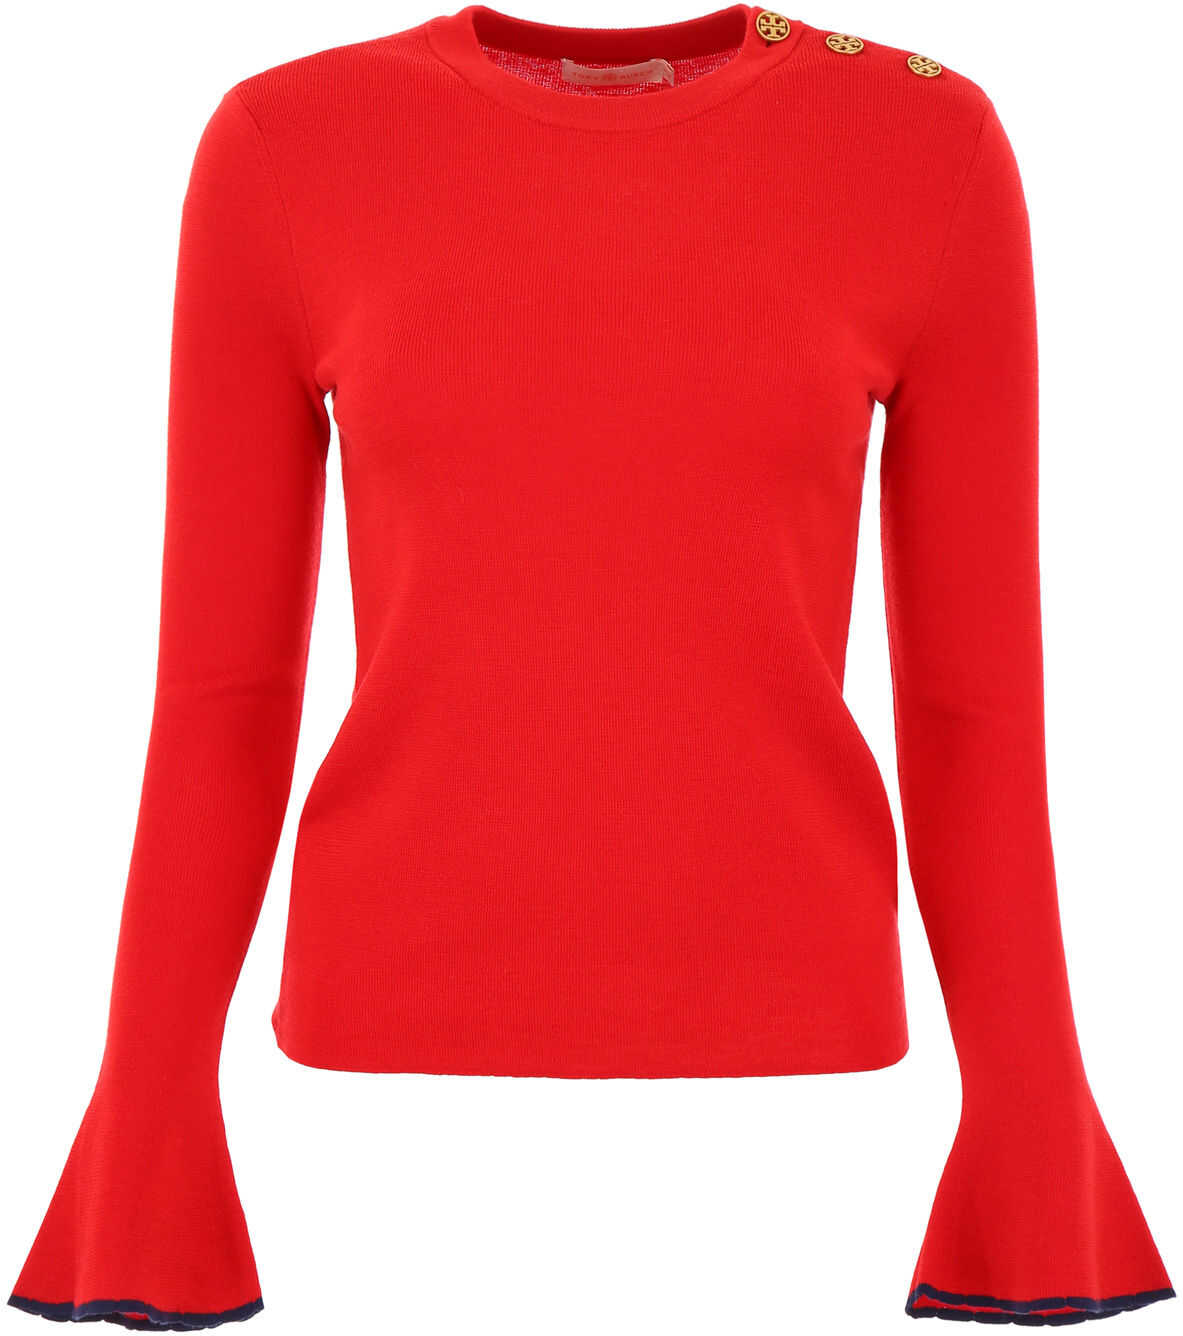 Tory Burch Pull With Flared Sleeves RED VOLCANO